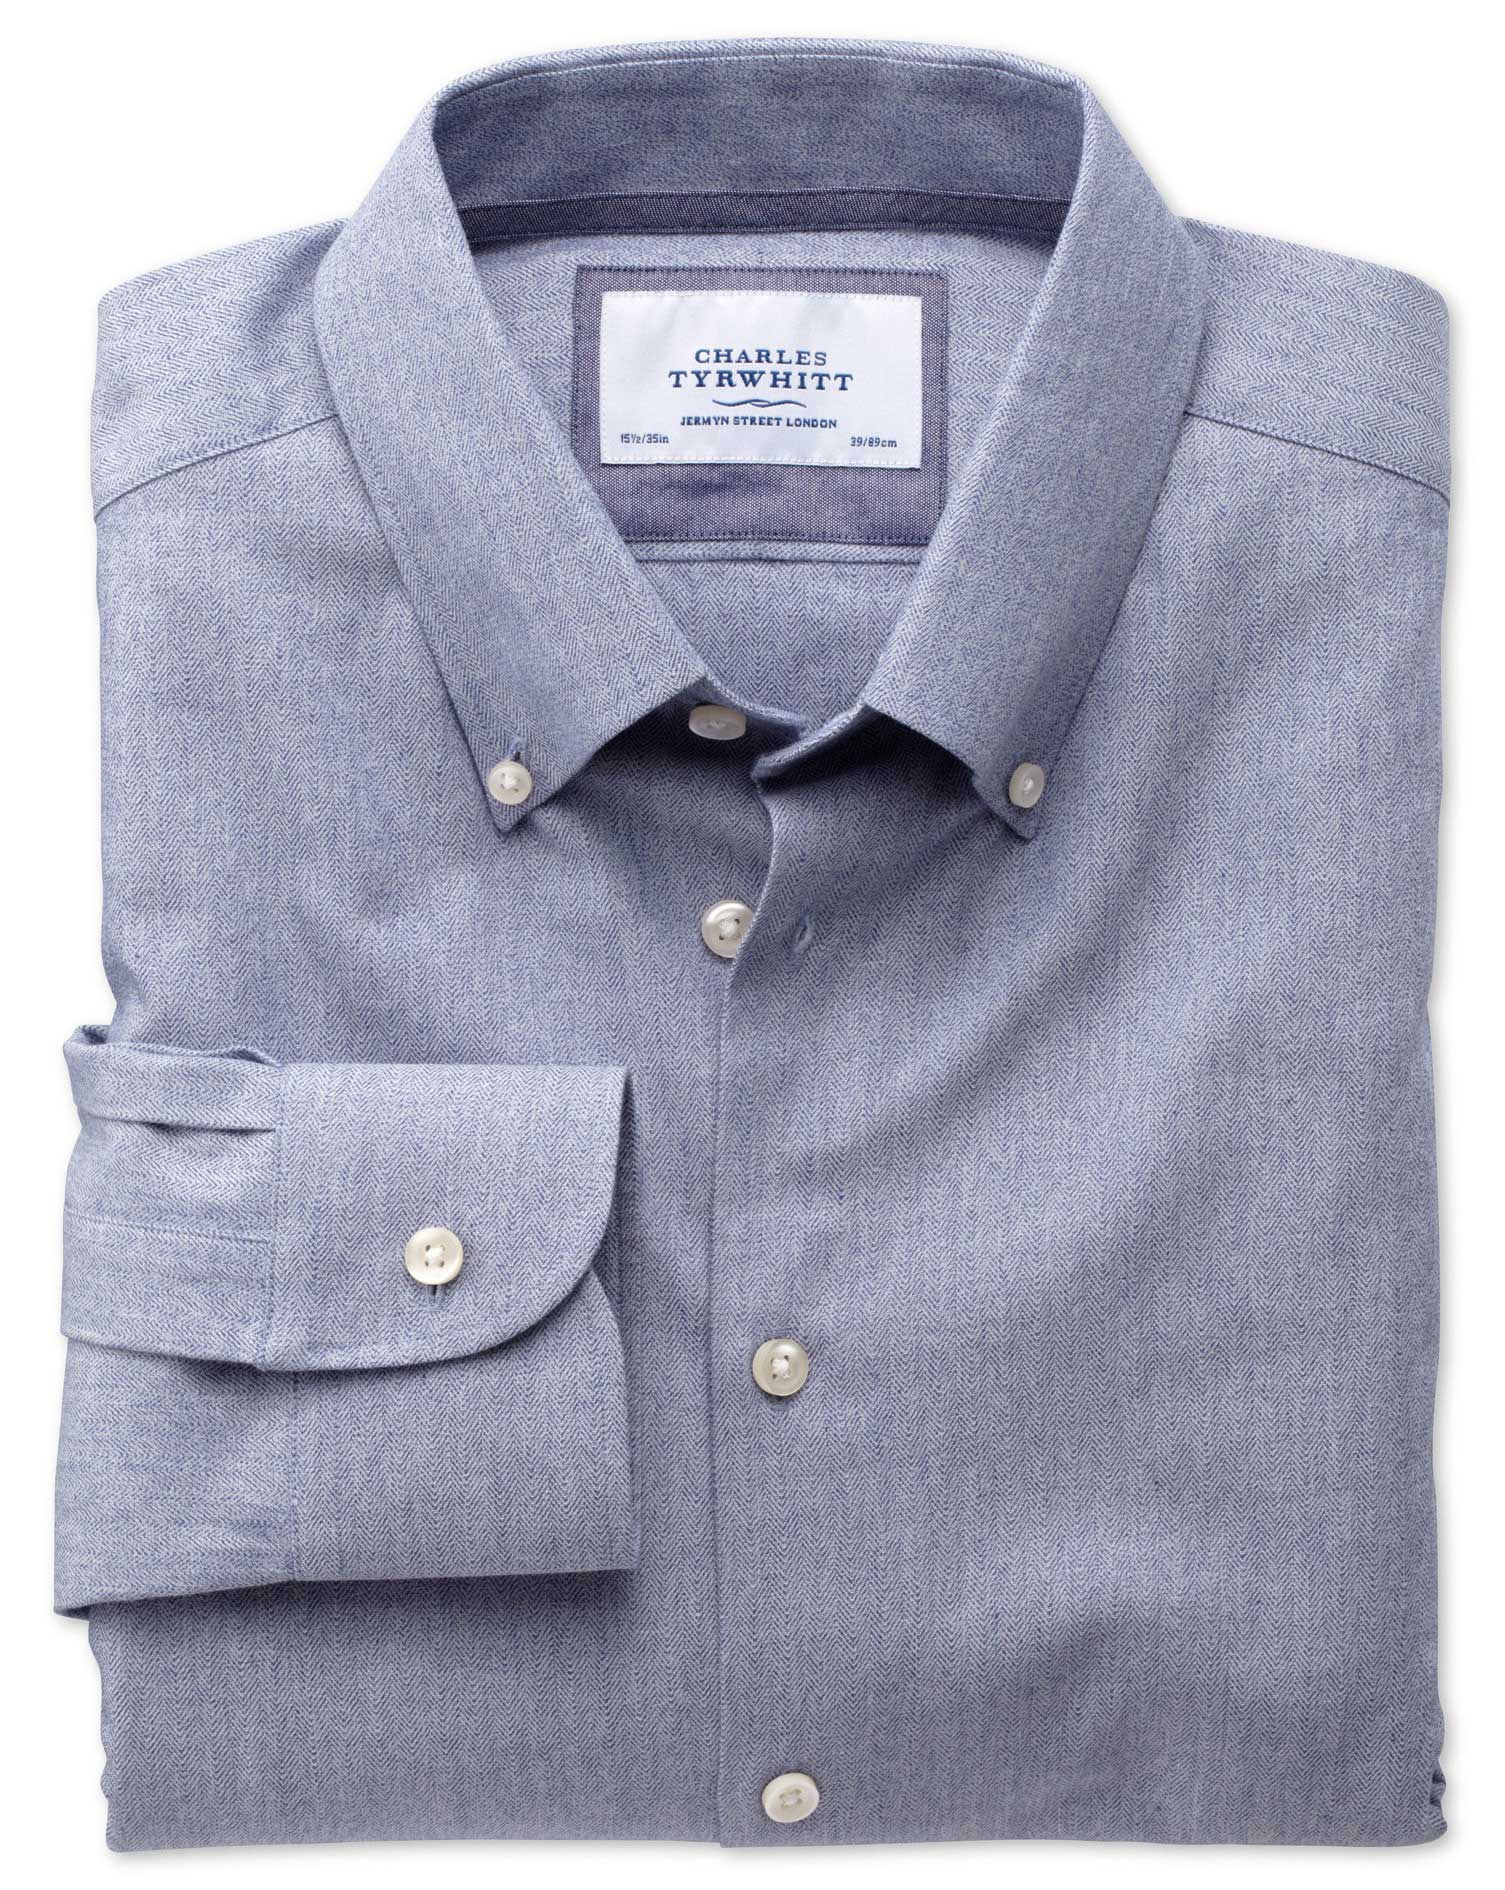 Extra Slim Fit Button-Down Collar Business Casual Blue Formal Shirt Single Cuff Size 16.5/34 by Char